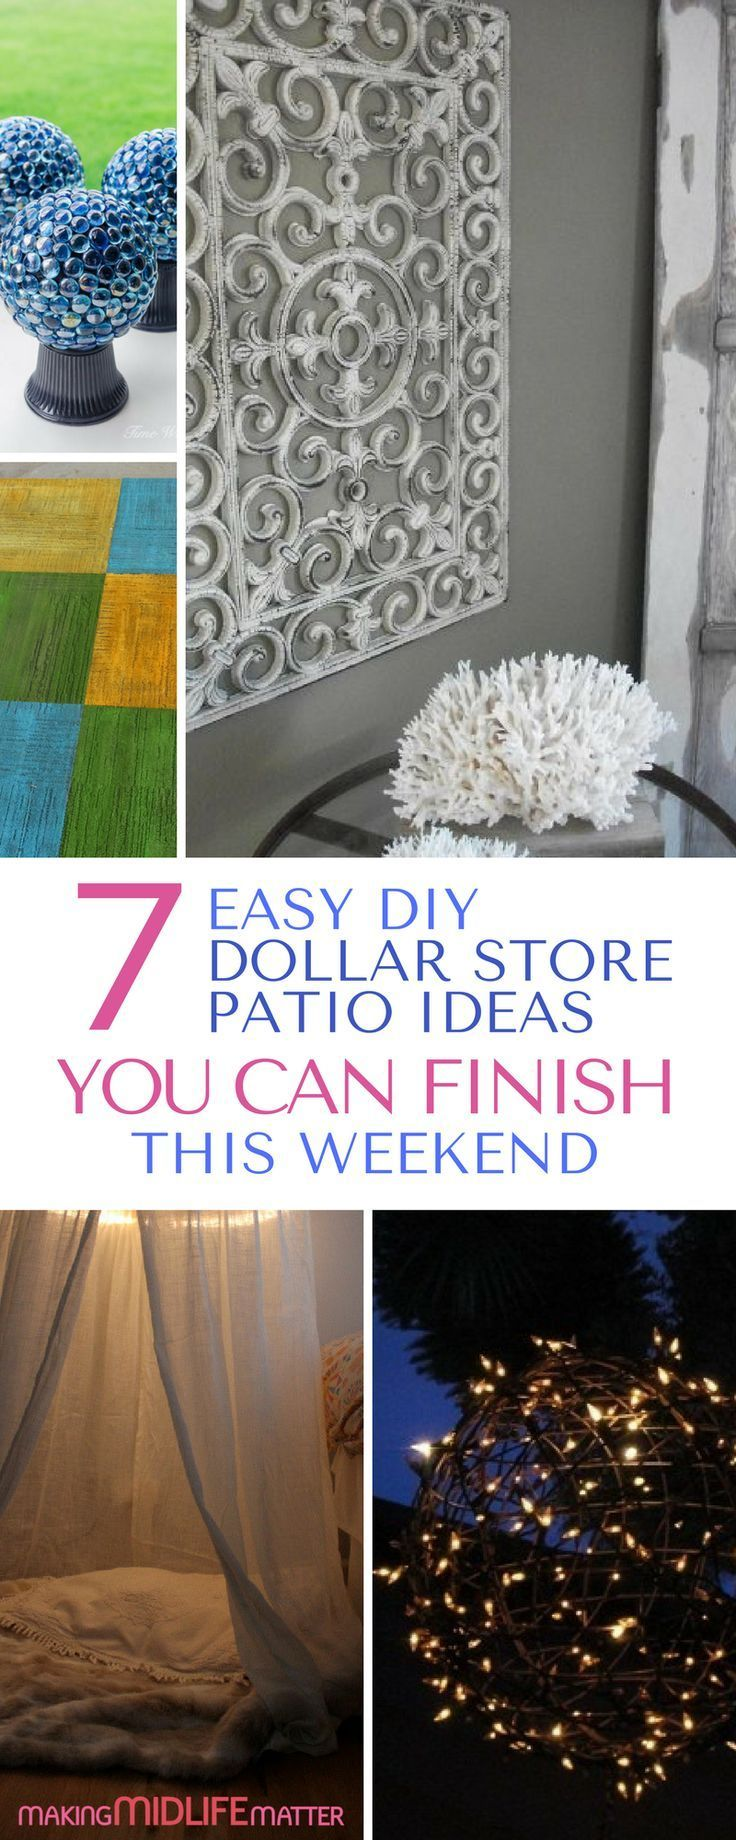 These 7 dollar store patio ideas will make your backyard a summer oasis. Get them all done in one weekend on budget. Be frugal with style and start to enjoy the warmer weather outdoors now. via @makingmidlife